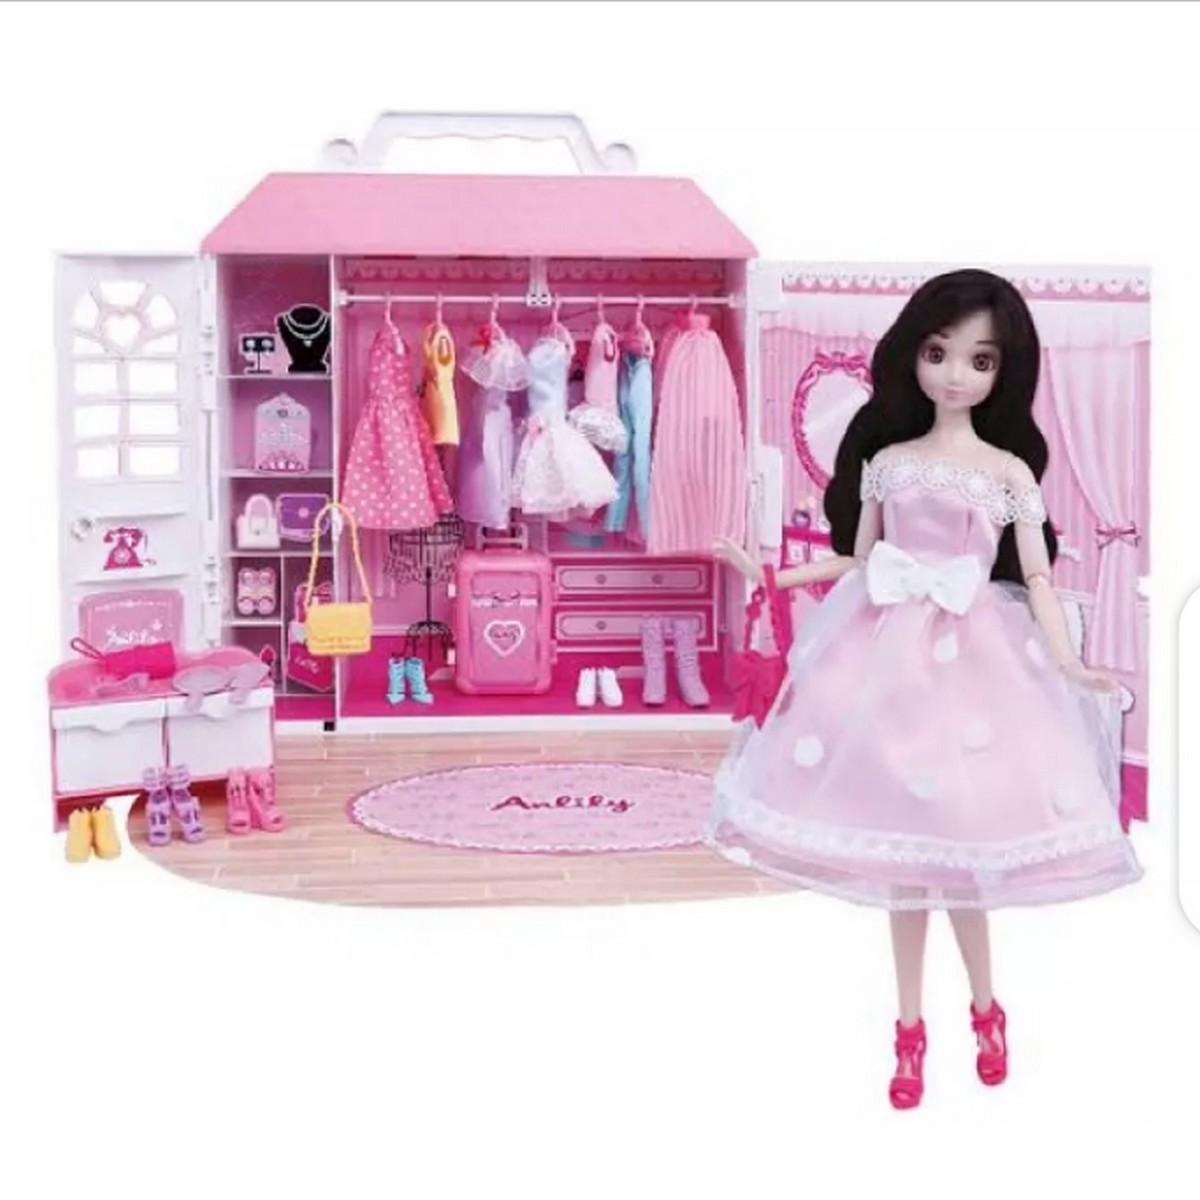 Lovely Girl Doll | Barbiee Fashionistas Ultimate Closet Doll And Accessories |Doll Wardrobe Playset Toy For Girls